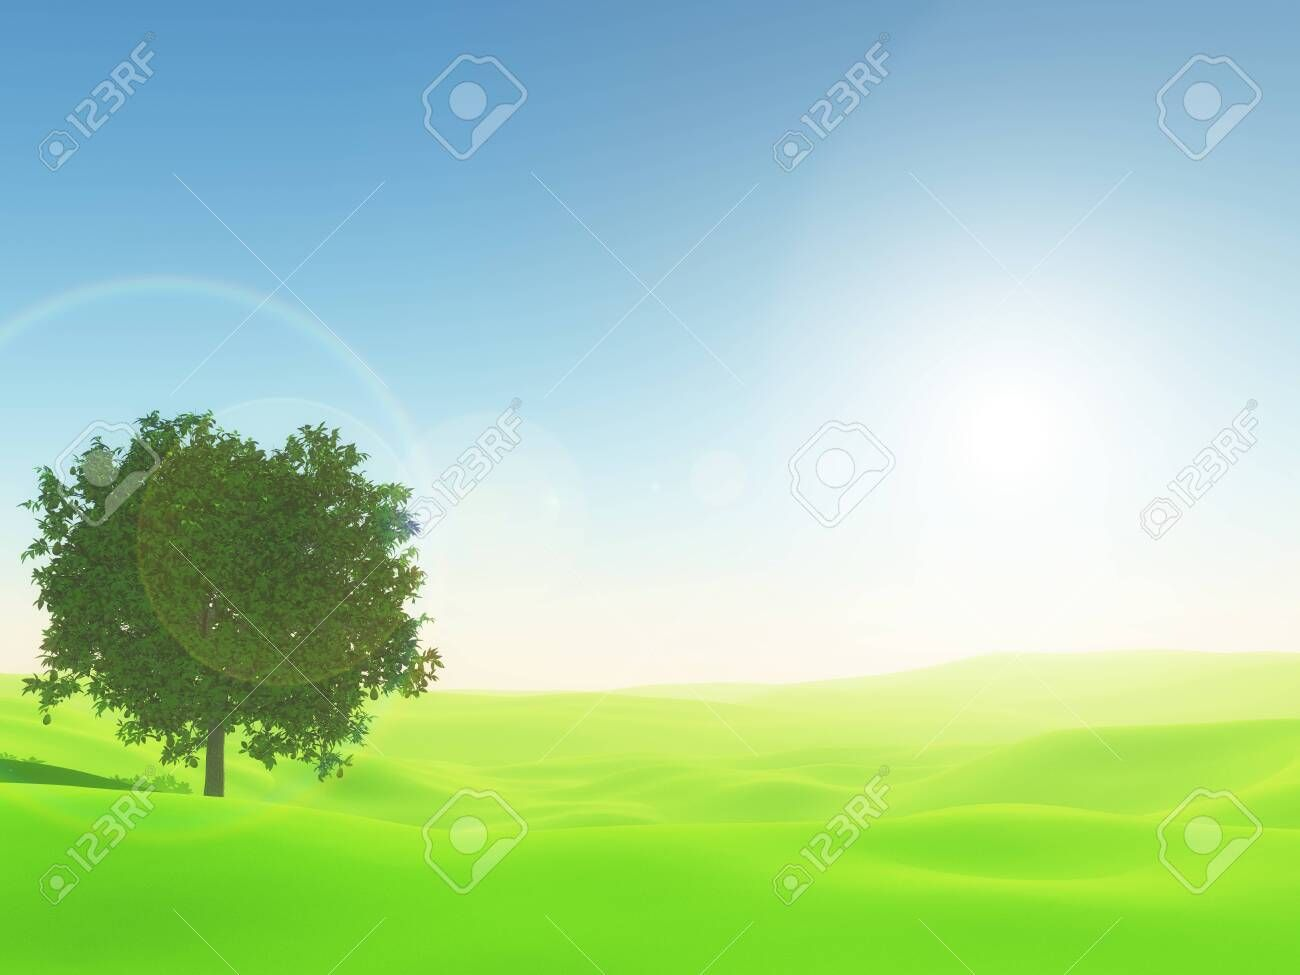 3d Render Of A Sunny Landscape With Tree In Bright Green Grass Affiliate Landscape Sunny Render Tree Grass Landscape Trees Green Grass Landscape